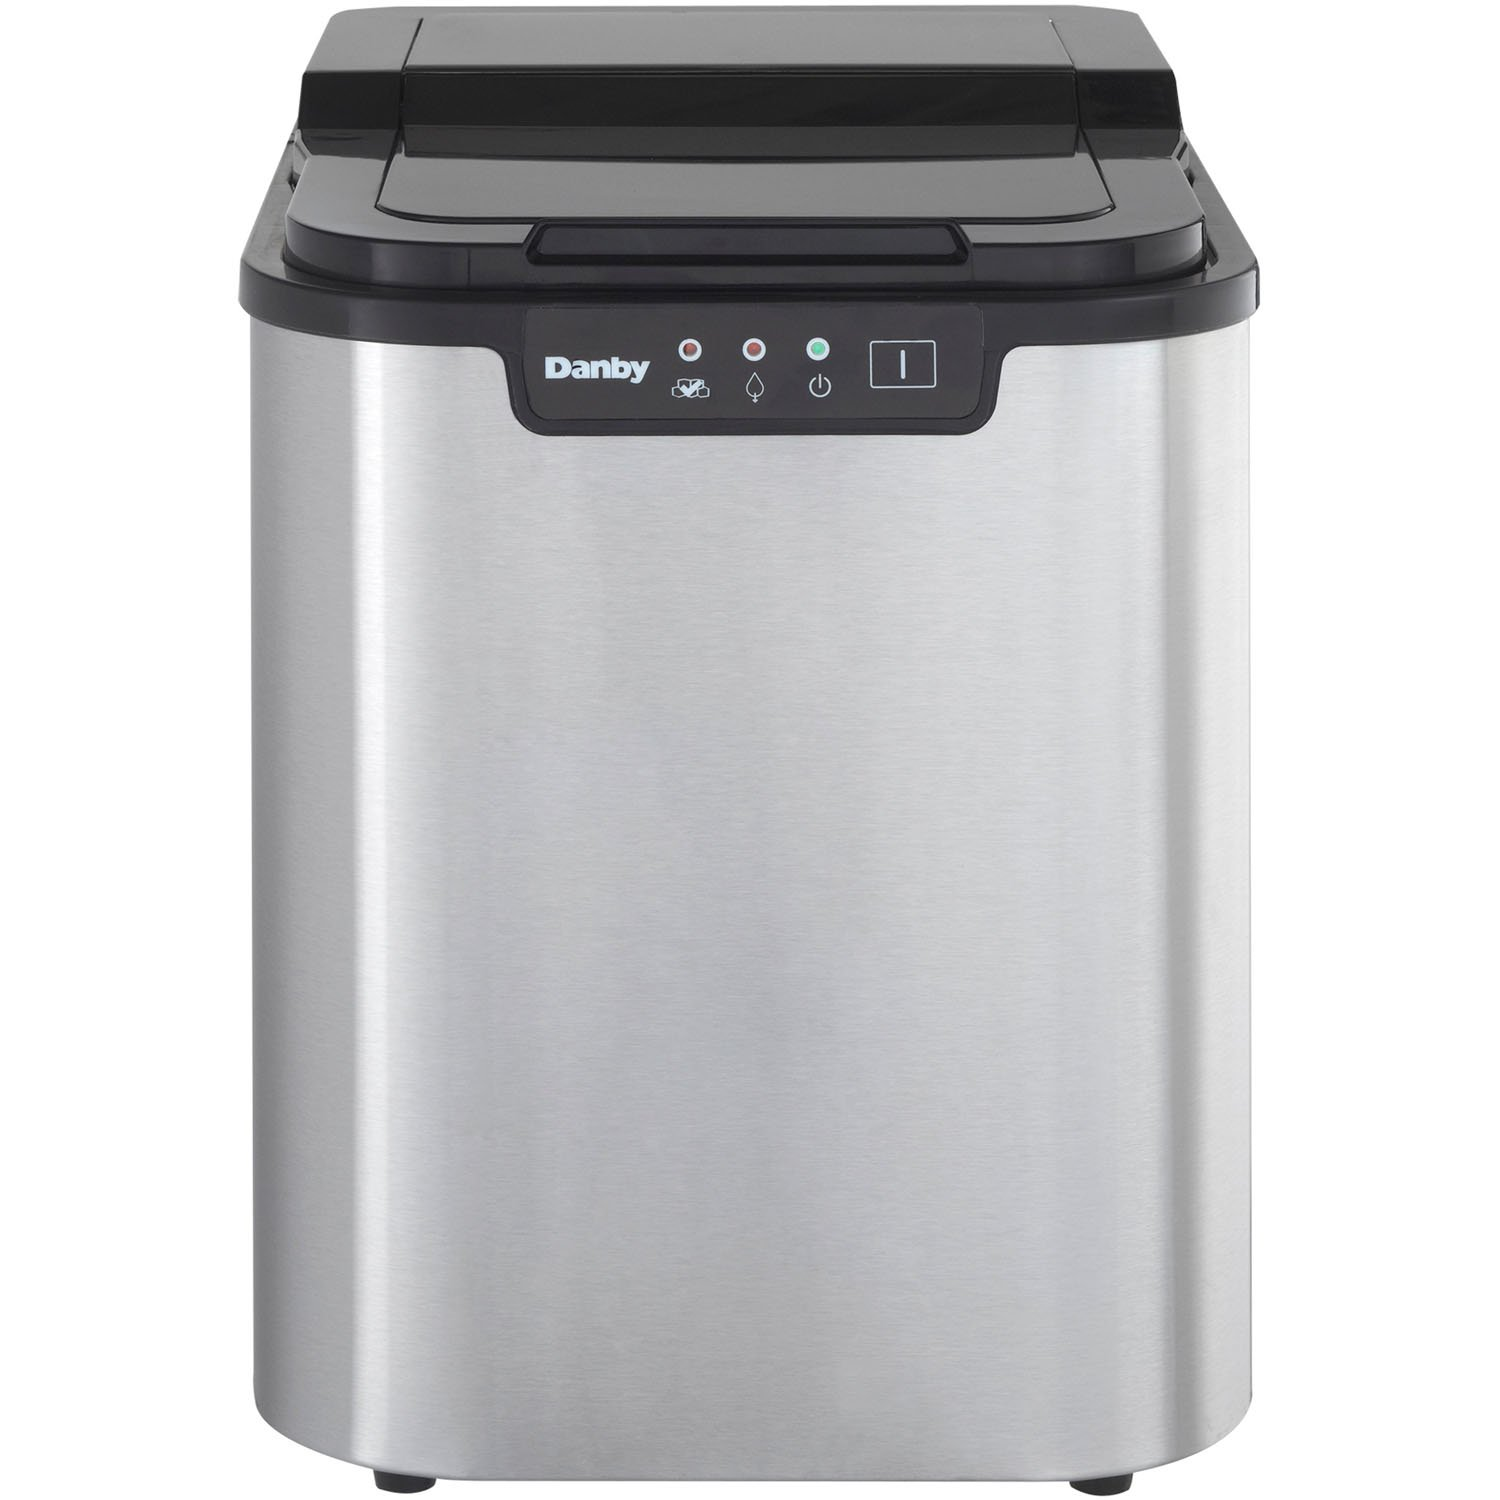 Danby DIM2500SSDB Portable Ice Maker, Stainless Steel ALMO - Dropship